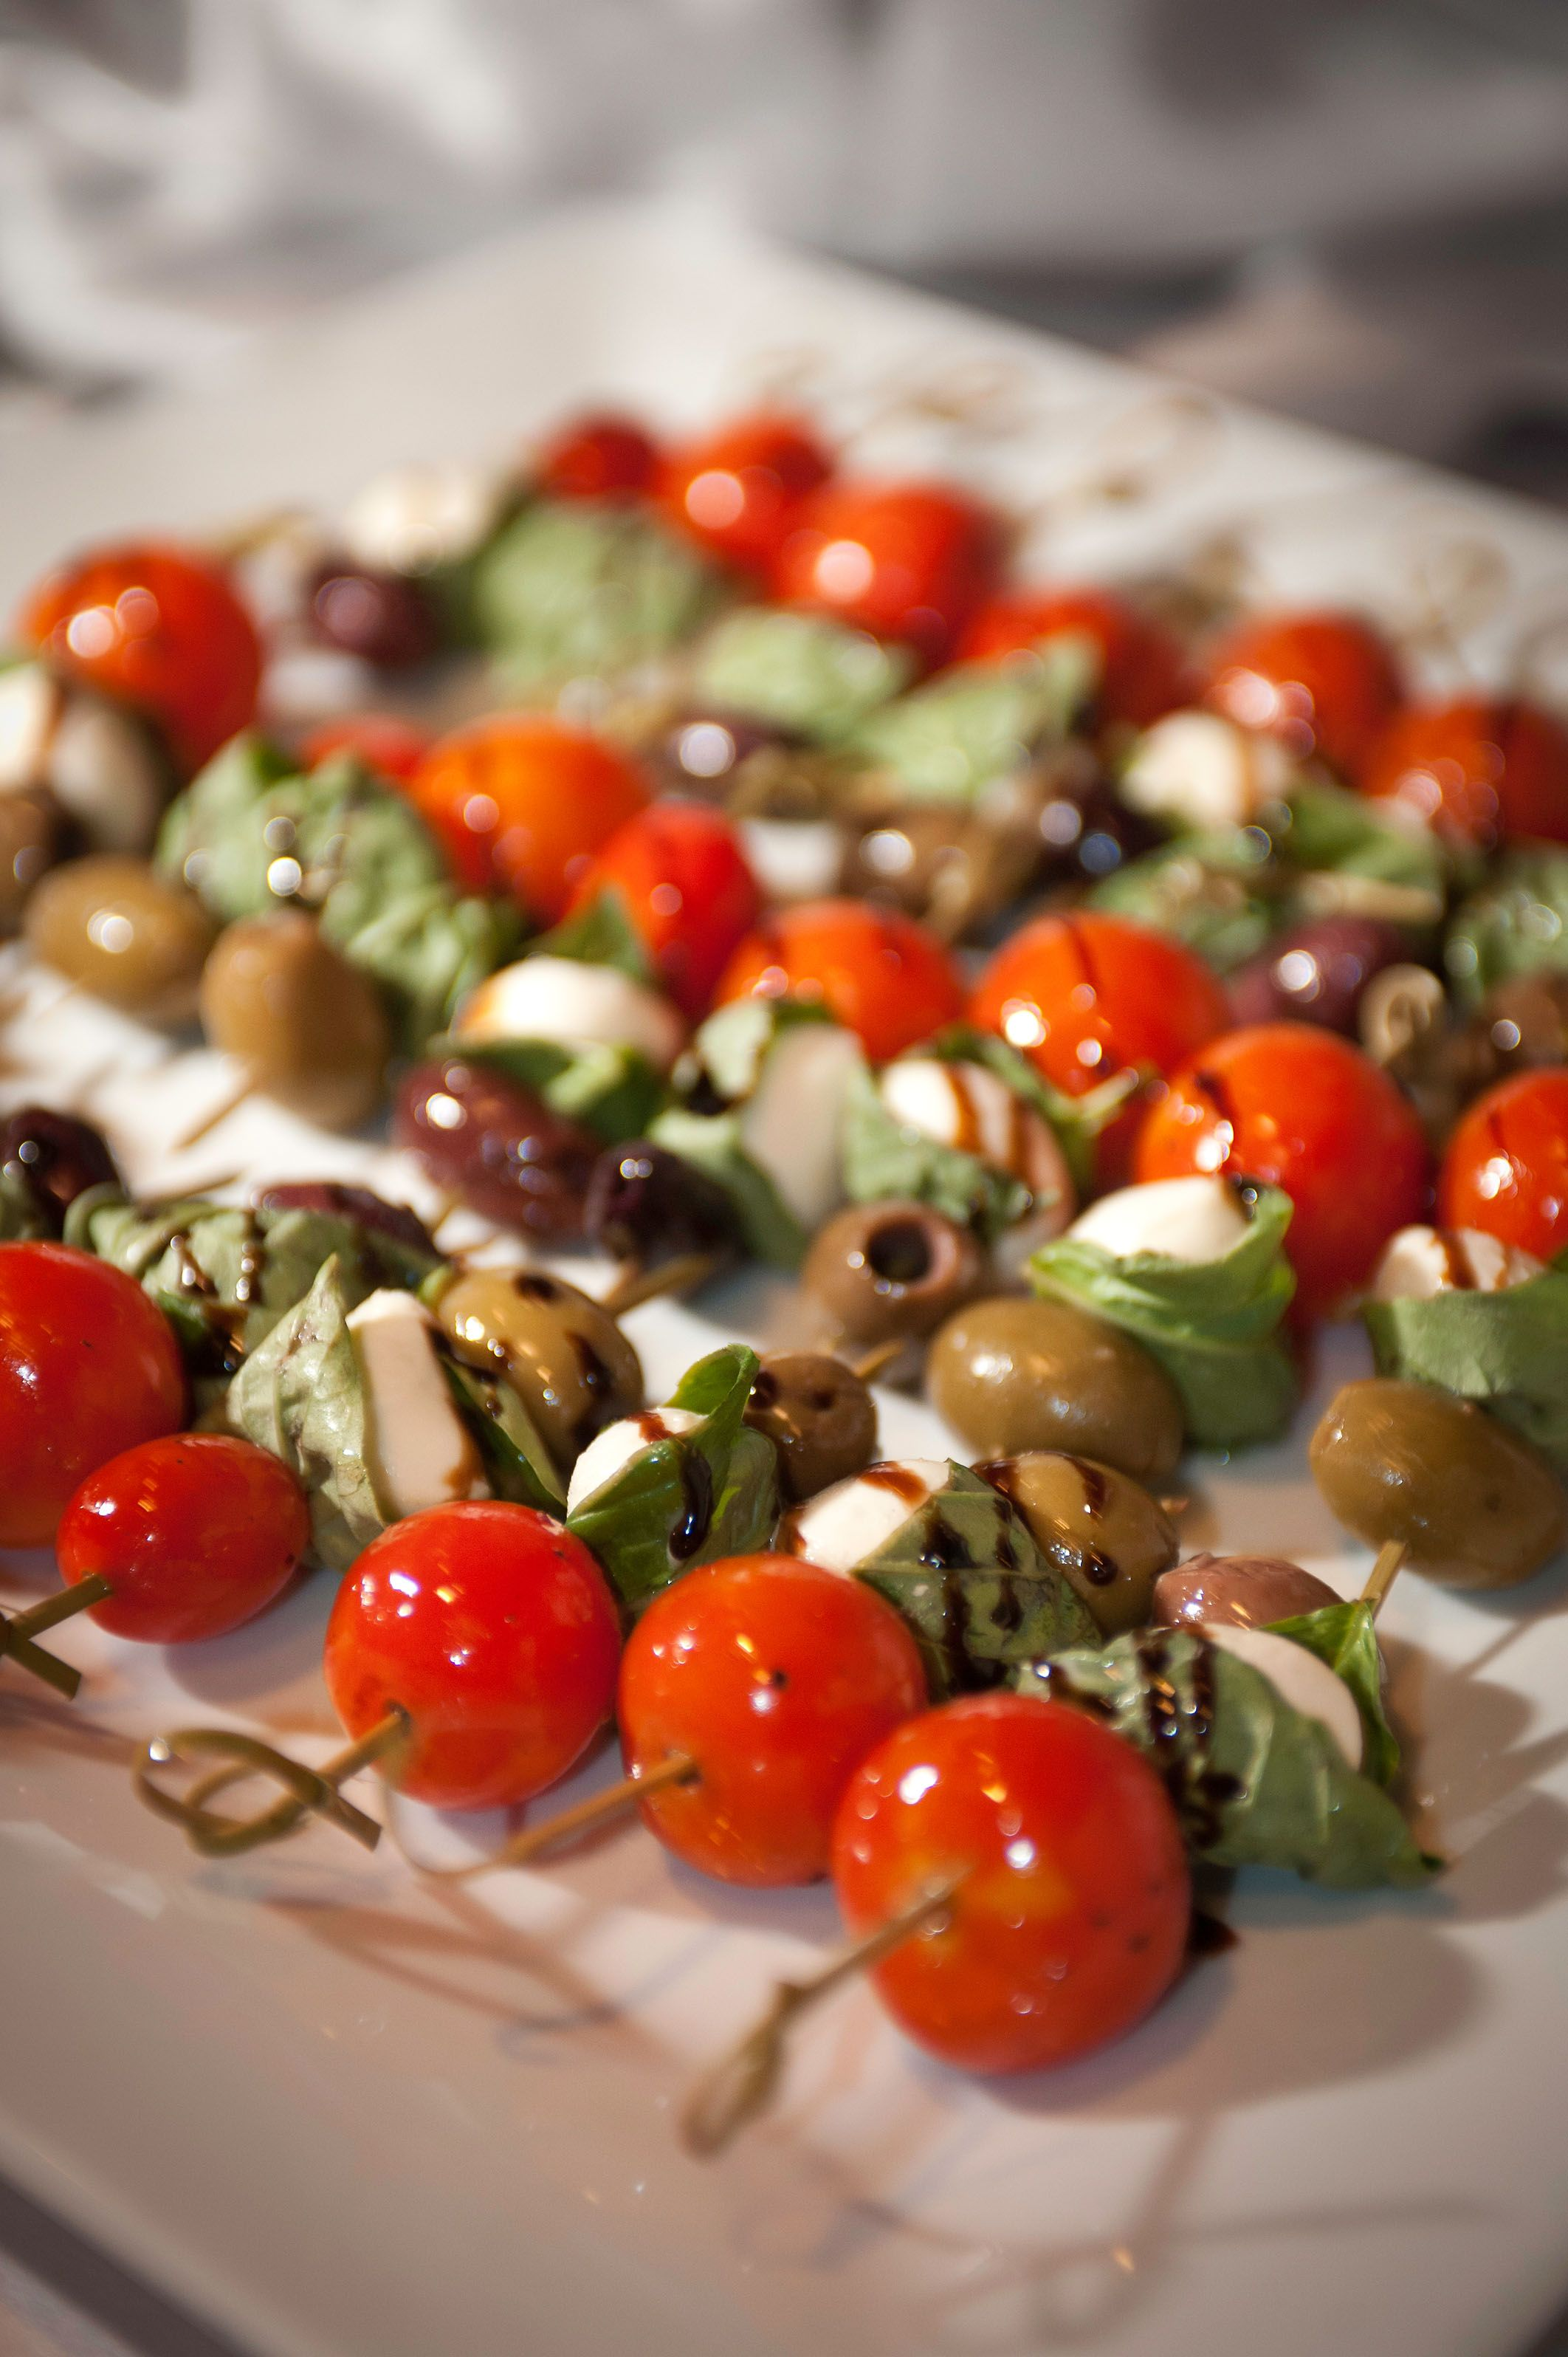 Roasted Tomato Mozzarella Bites Crave Catering Minneapolis Mn Grand Opening Party Event Food Food